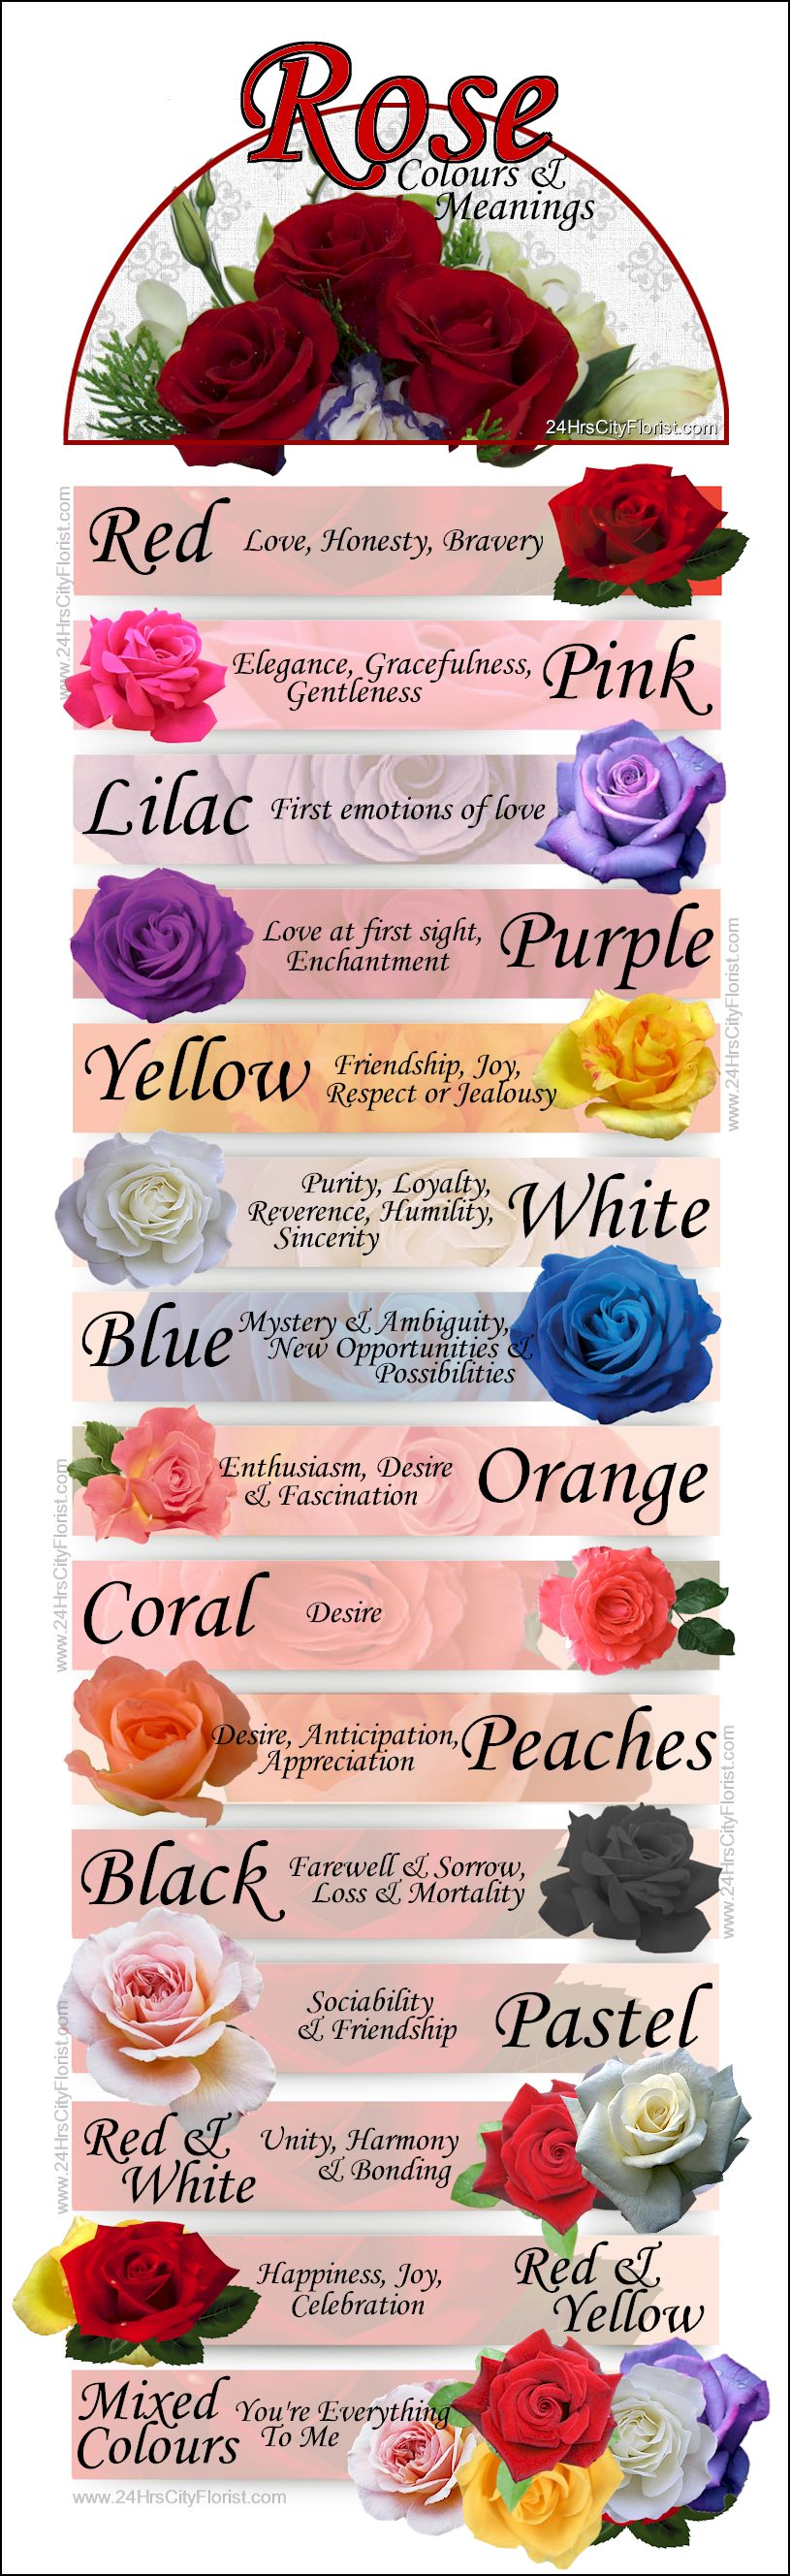 Rose Colours & Meanings